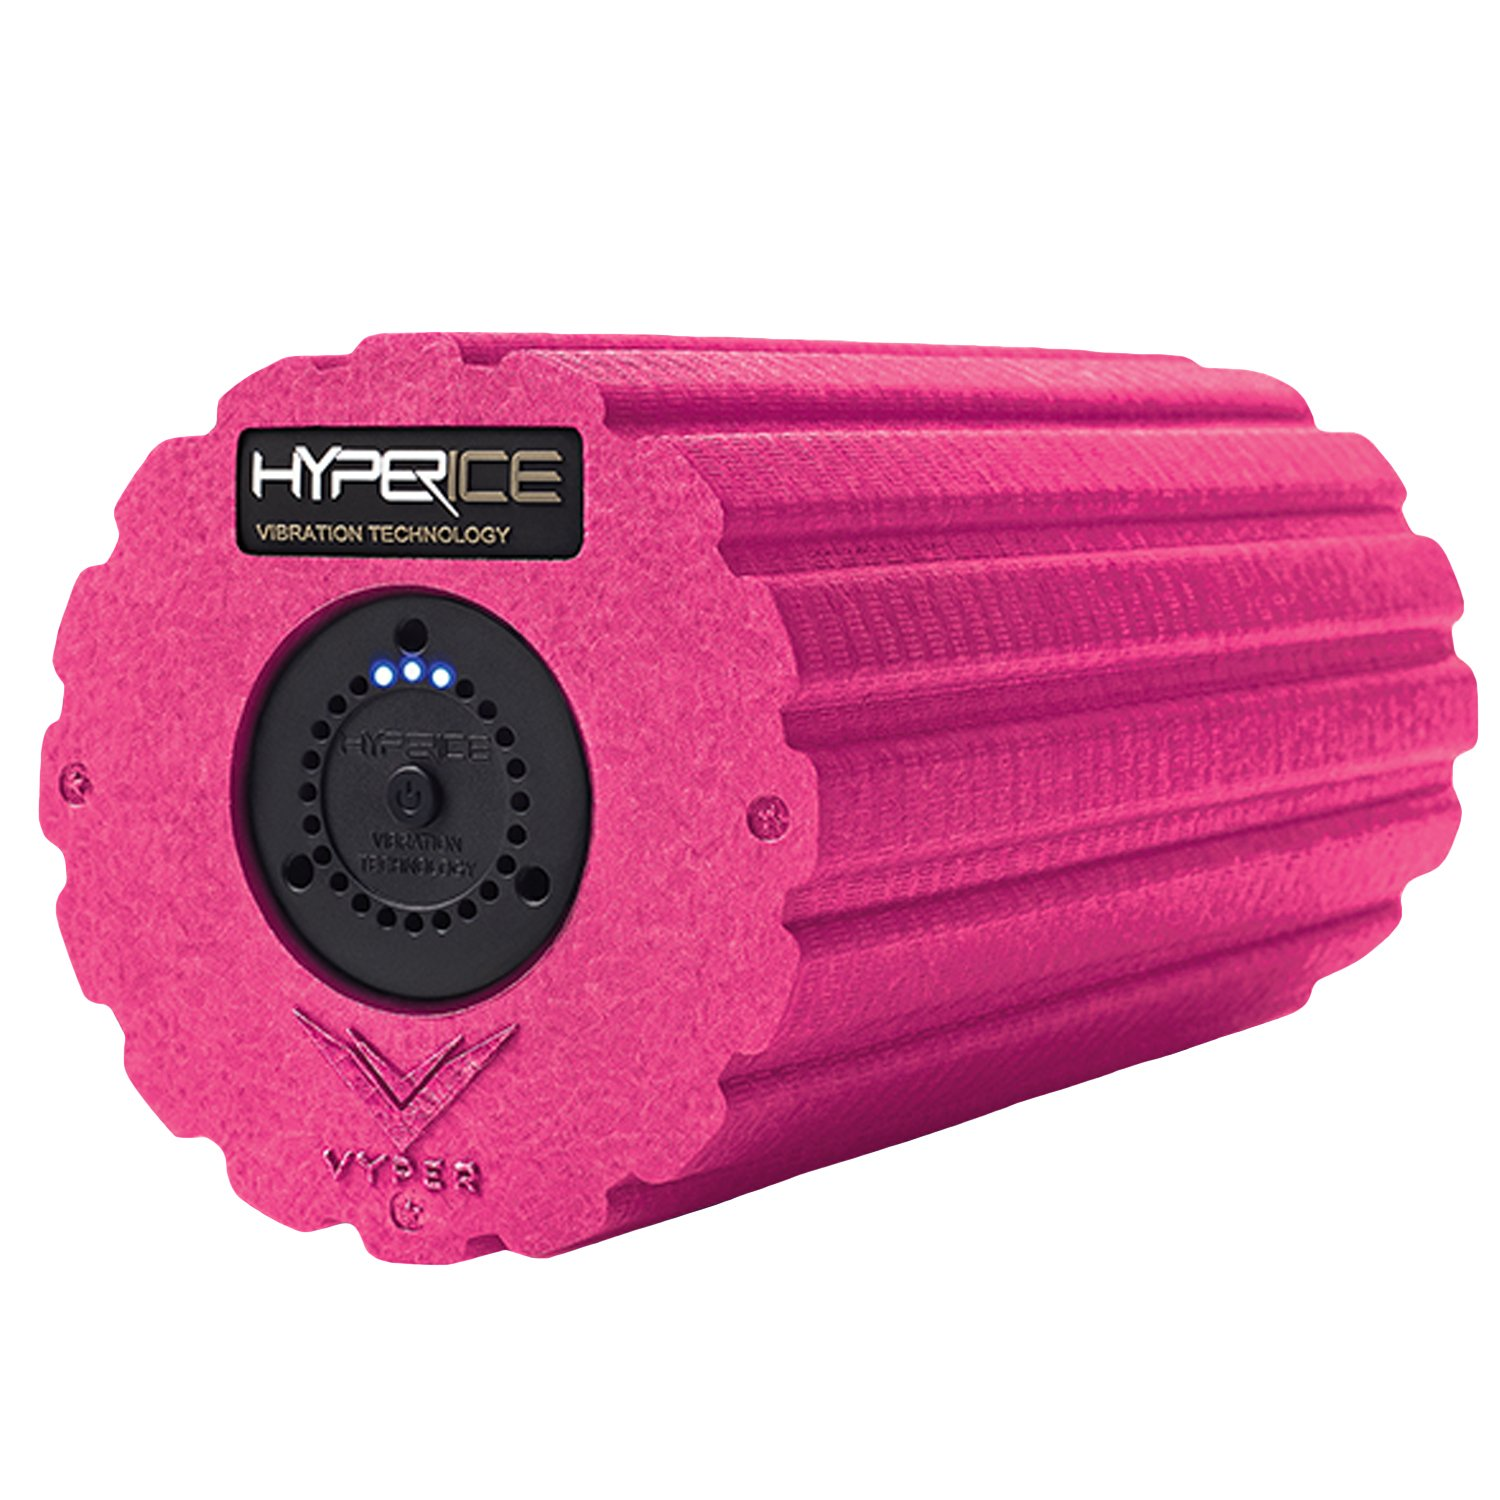 HyperIce Vyper - 3 Speed Vibrating Foam Roller for Muscles - Ideal For Myofascial Release - Deep Tissue Massage - Relieve Muscle Pain And Stiffness Like The Professionals